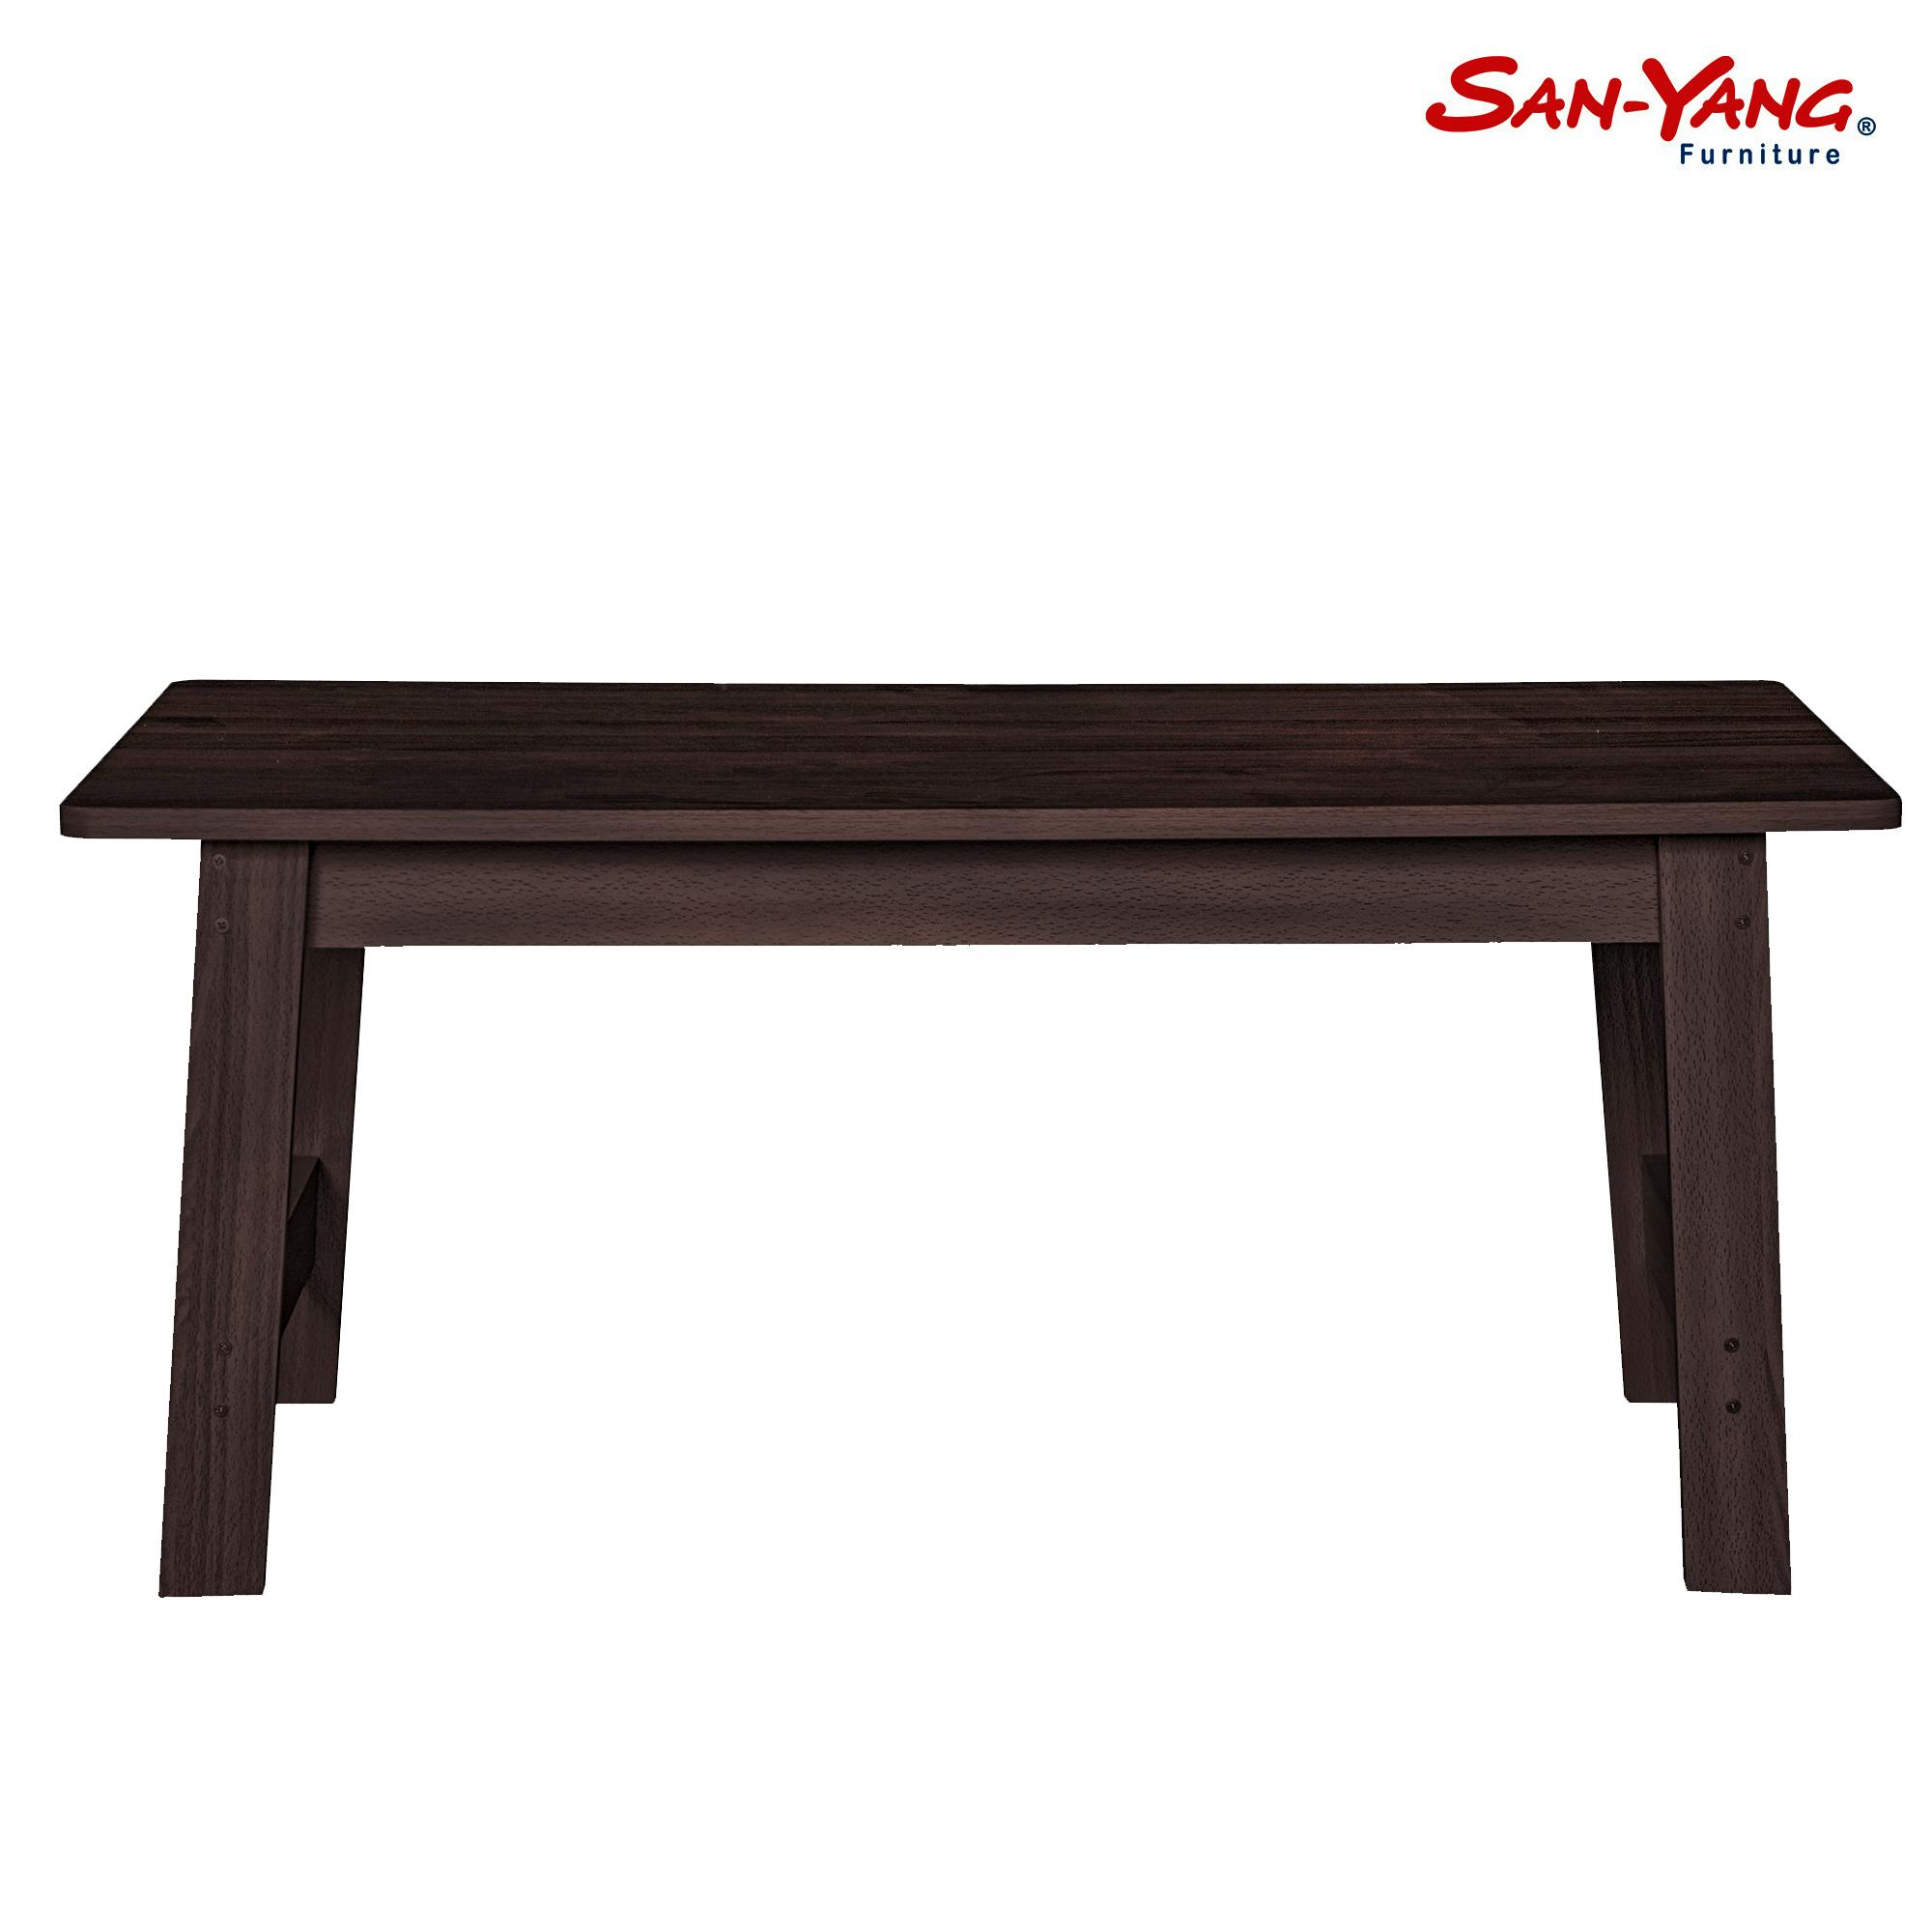 Side Tables For Sale – Sofa Tables Prices, Brands & Review In Regarding Layered Wood Small Square Console Tables (View 14 of 30)